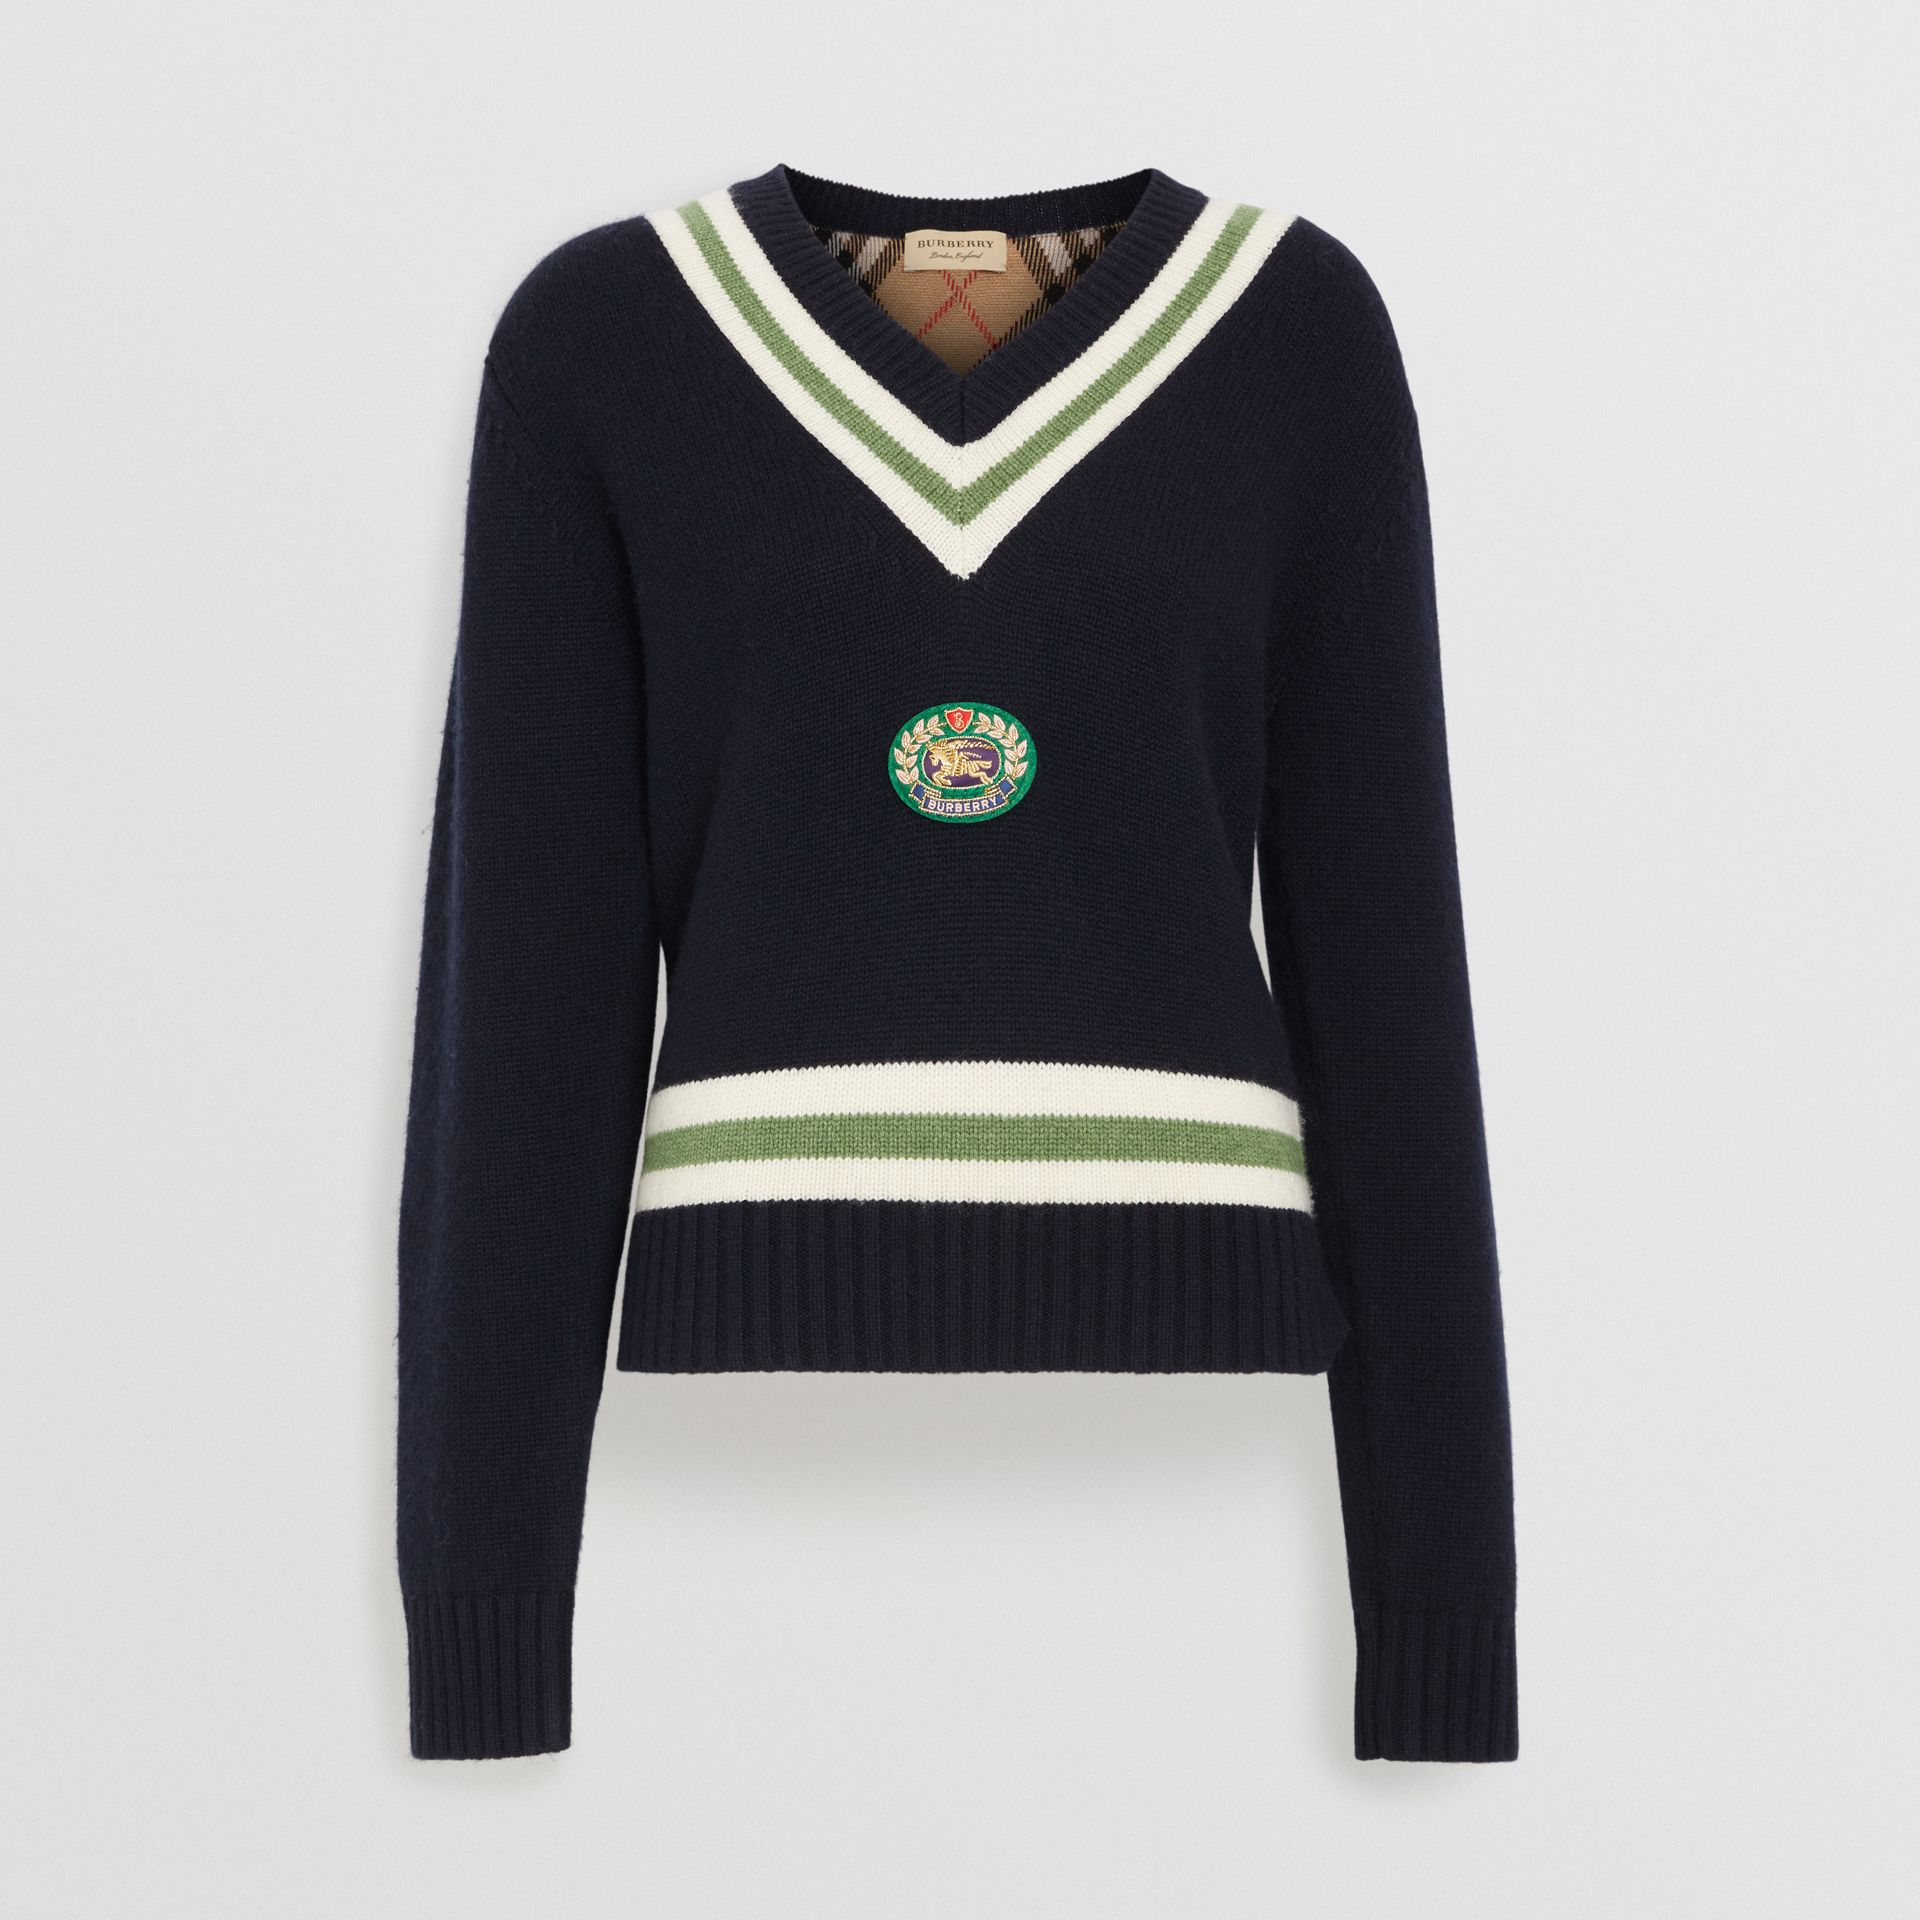 Embroidered Crest Wool Cashmere Sweater in Navy - Women | Burberry - gallery image 3